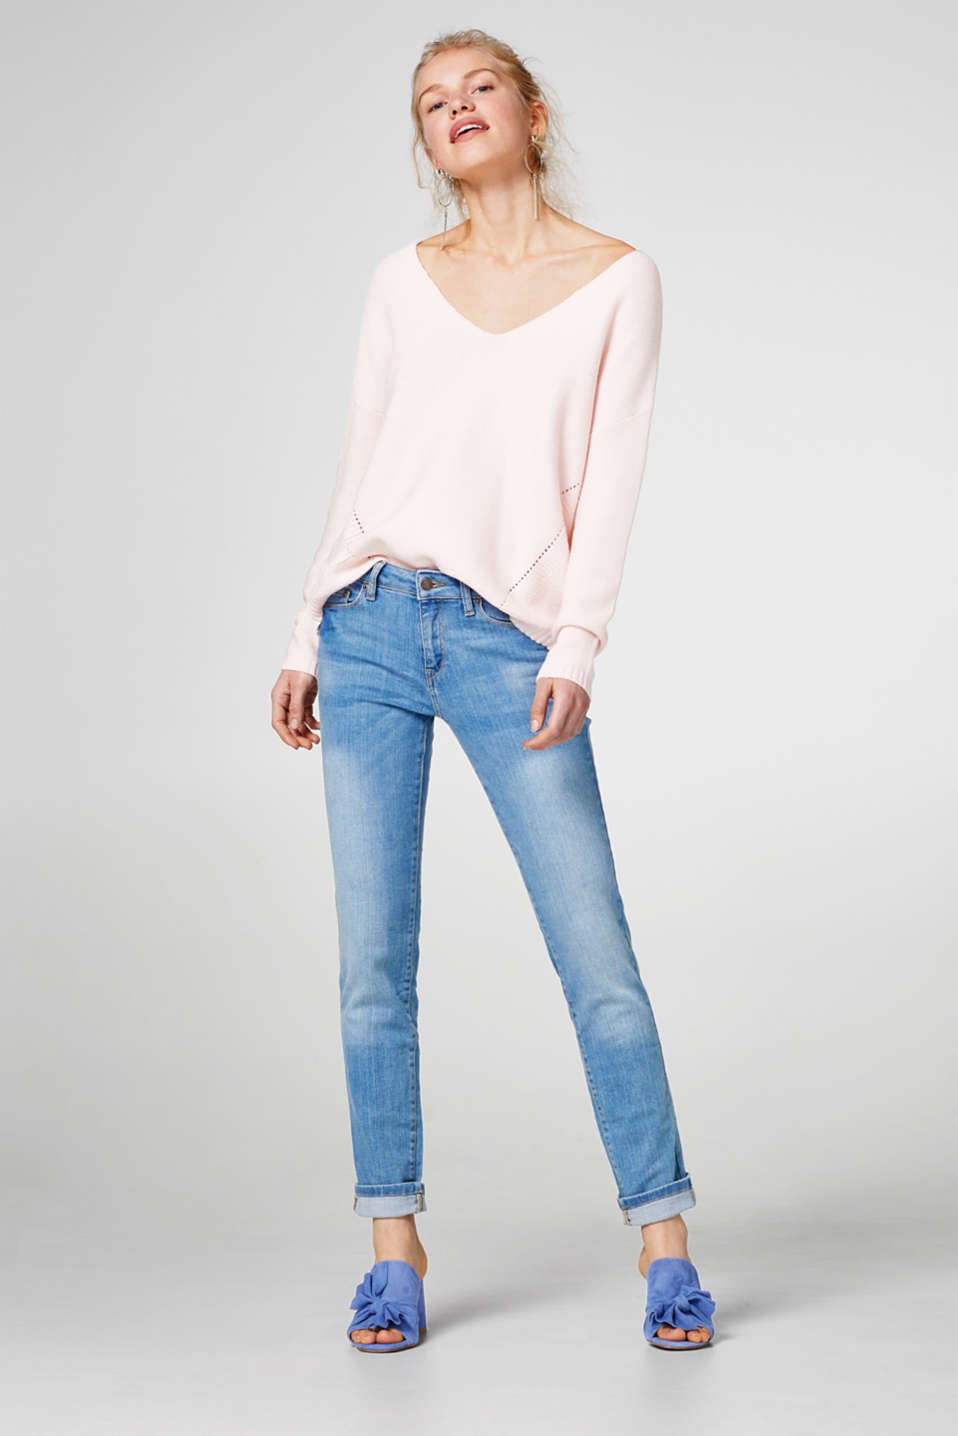 Pale stretch jeans in a five-pocket style